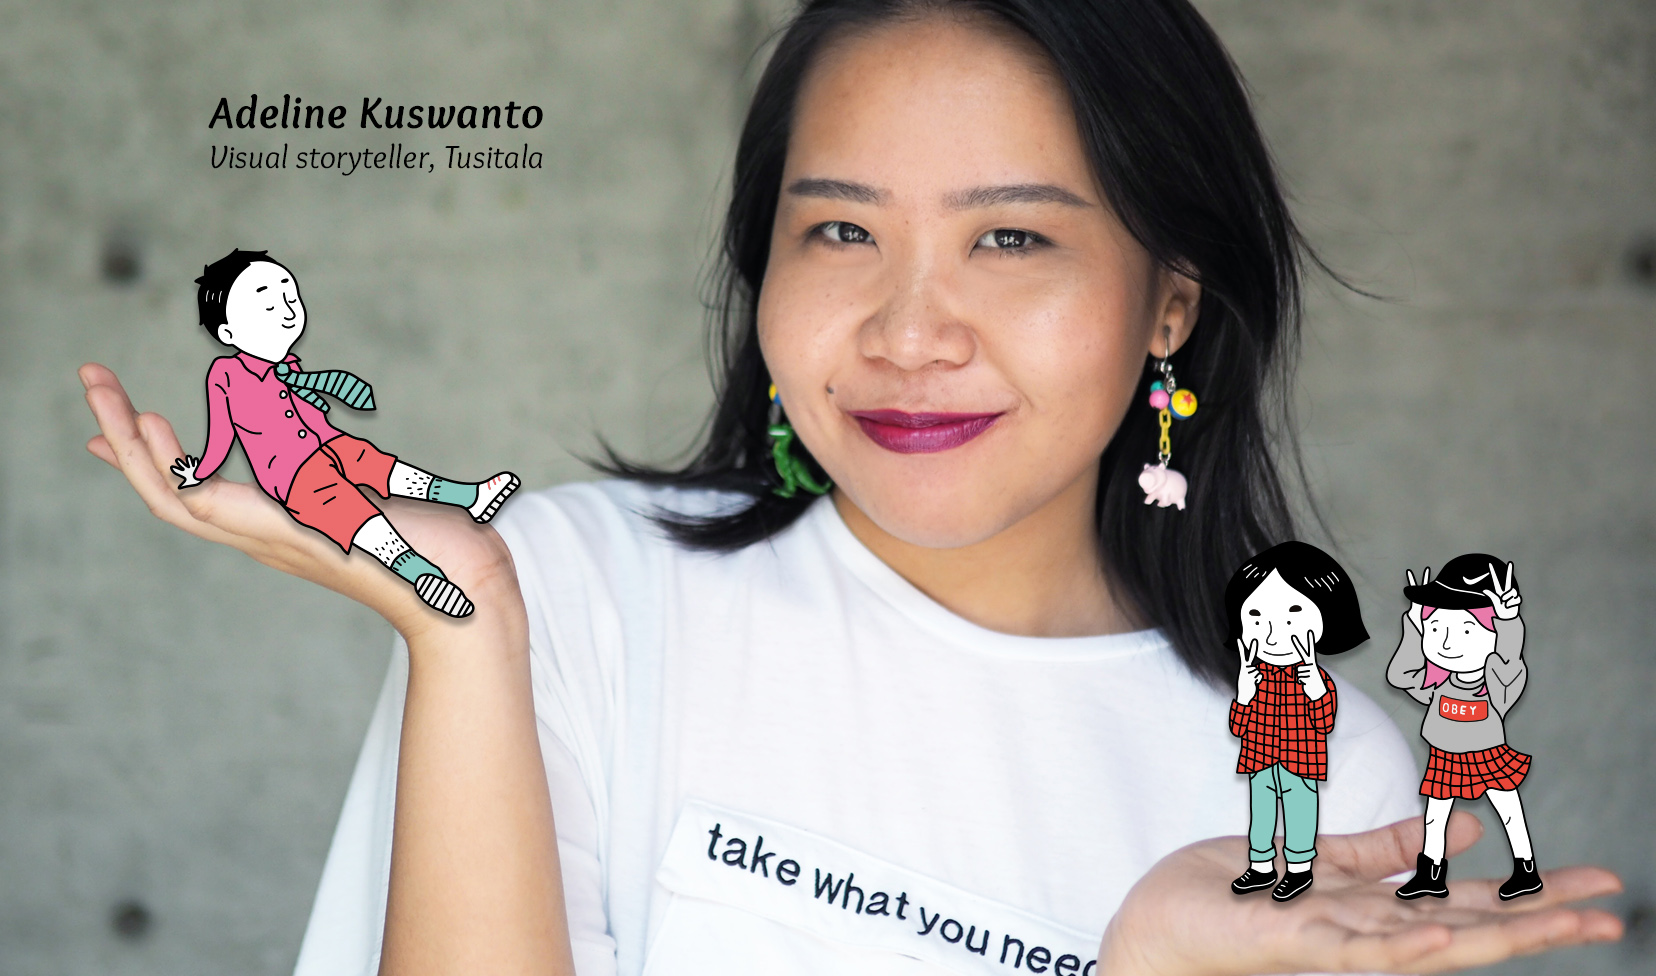 What's Your Story: Adeline Kuswanto, Visual Storyteller, Tusitala